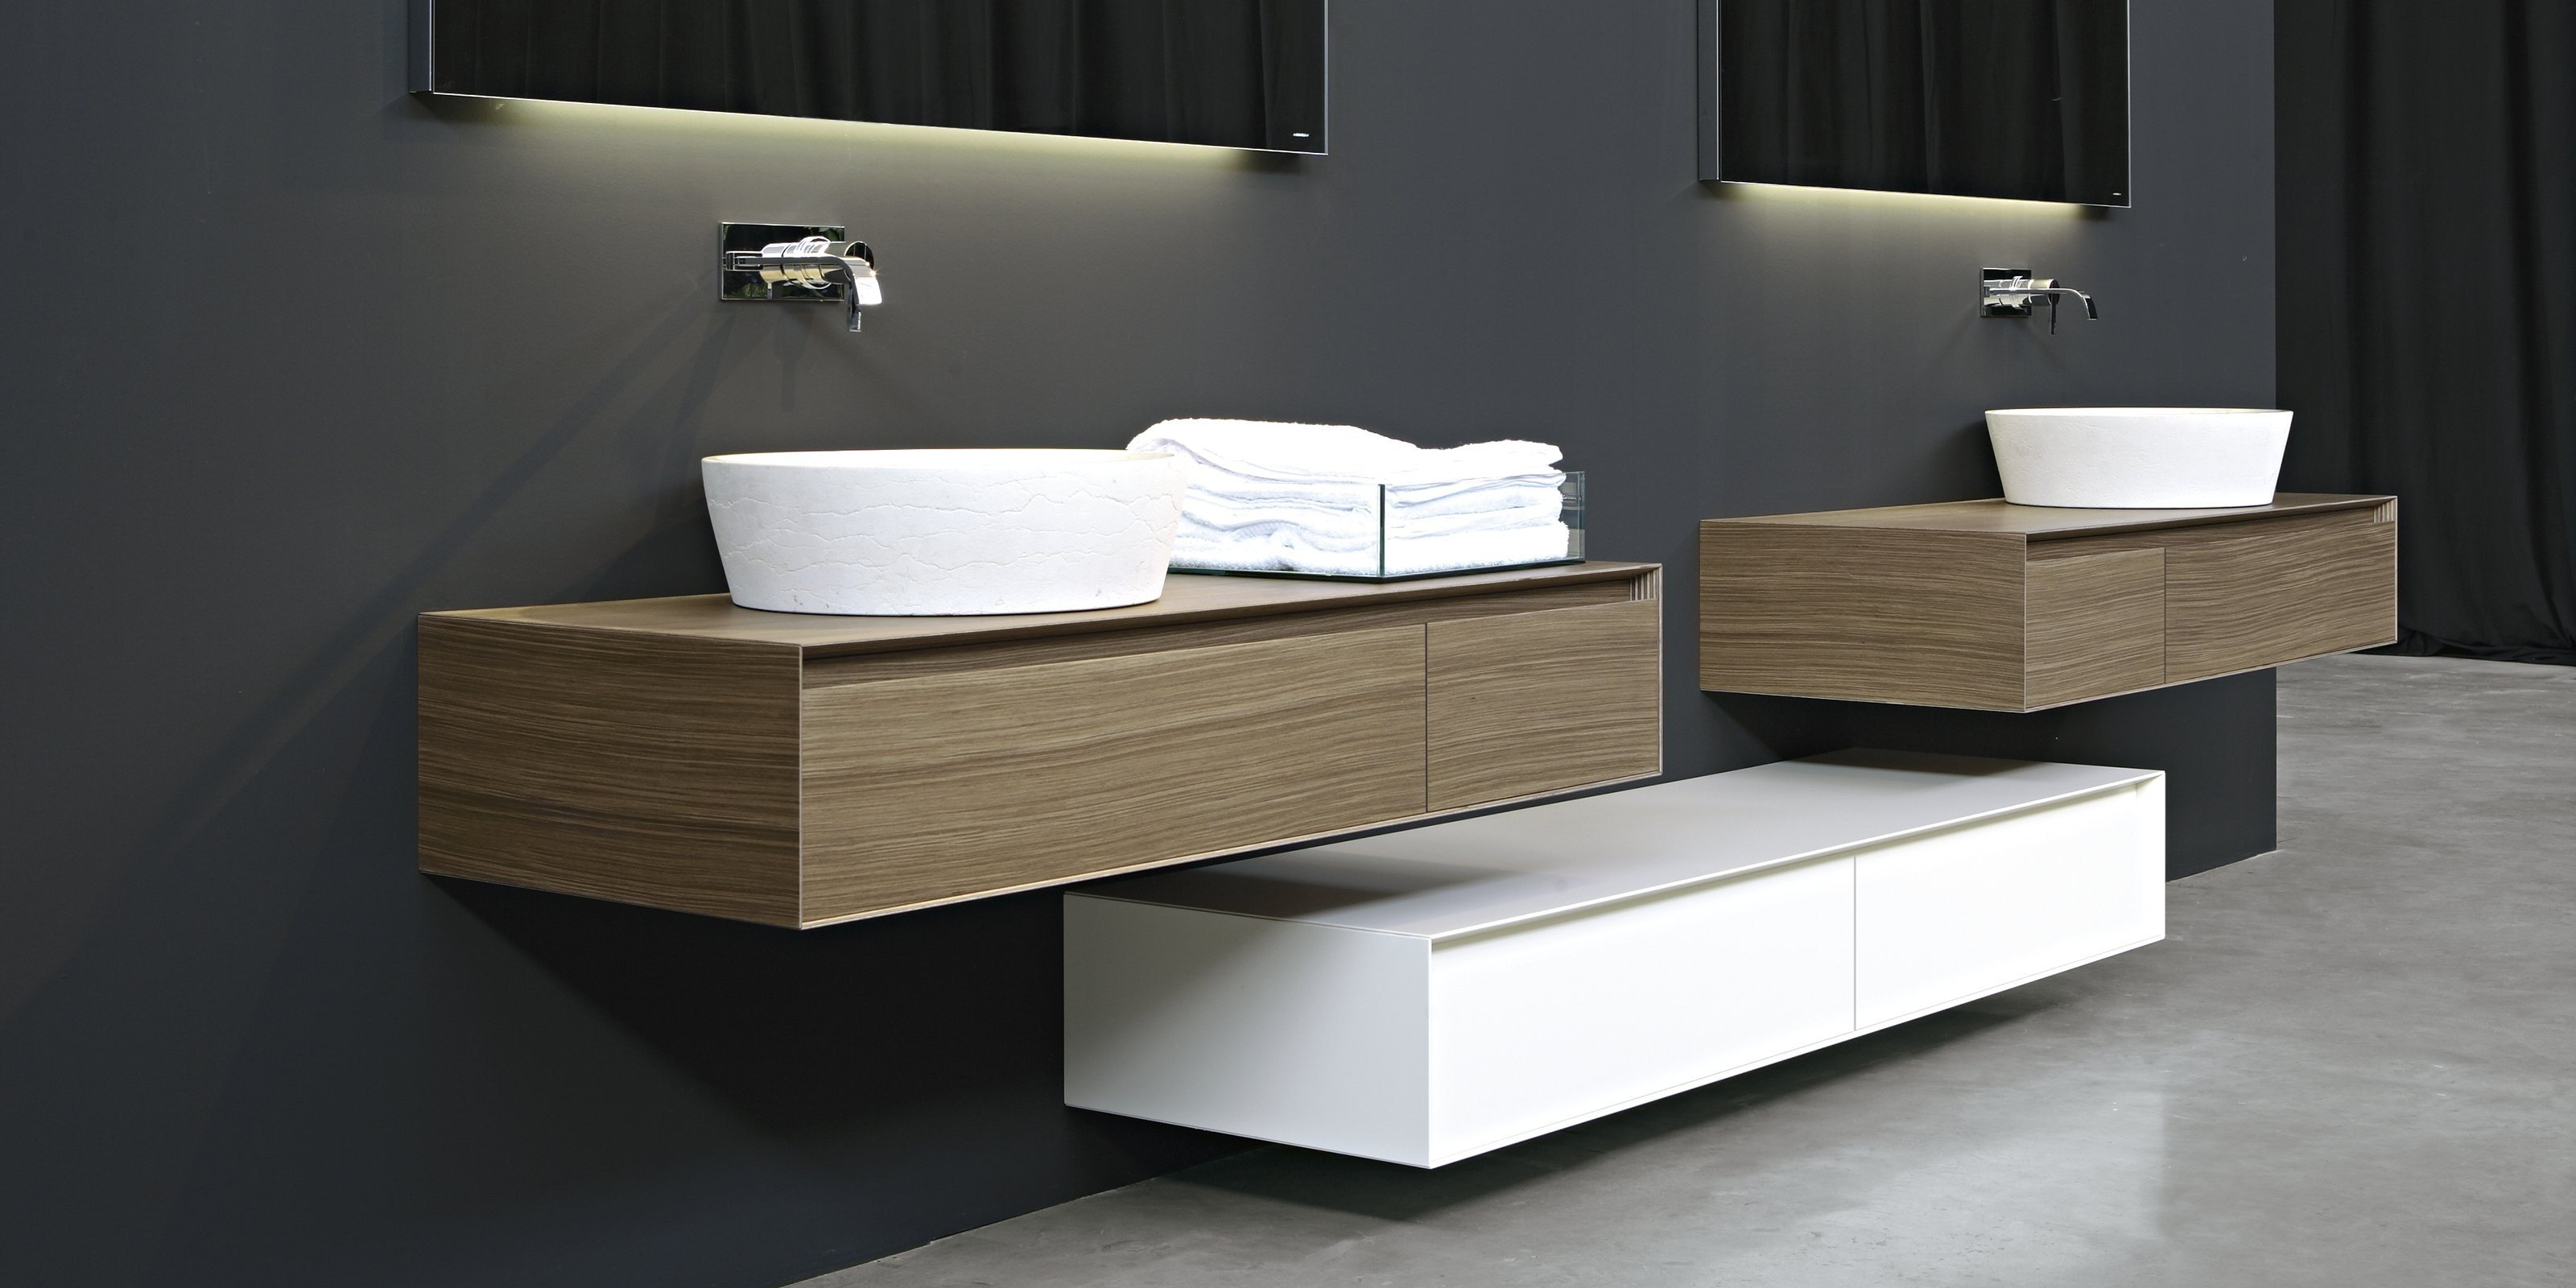 panta rei by antonio lupi design. Black Bedroom Furniture Sets. Home Design Ideas